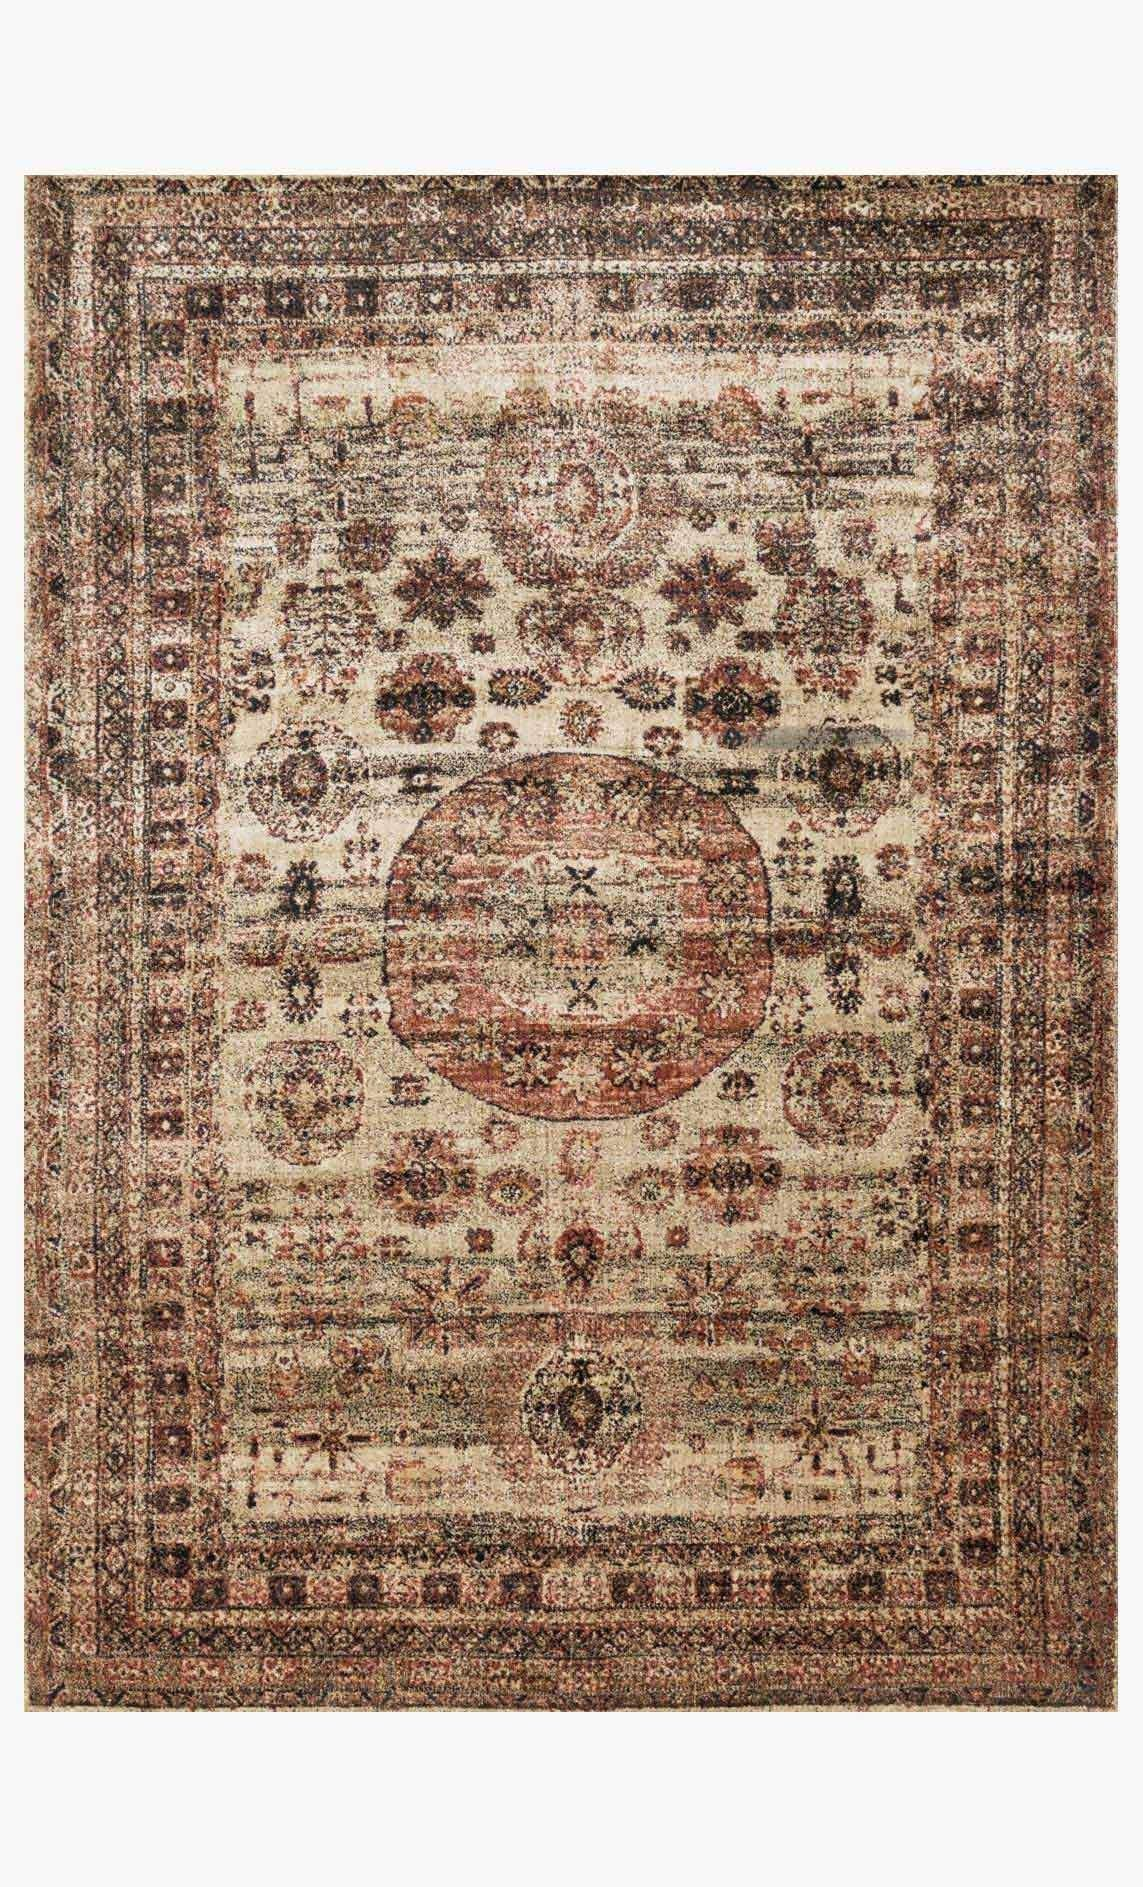 Af 03 Champagne Multi Loloi Rugs Area Rugs Vintage Inspired Rugs Rugs